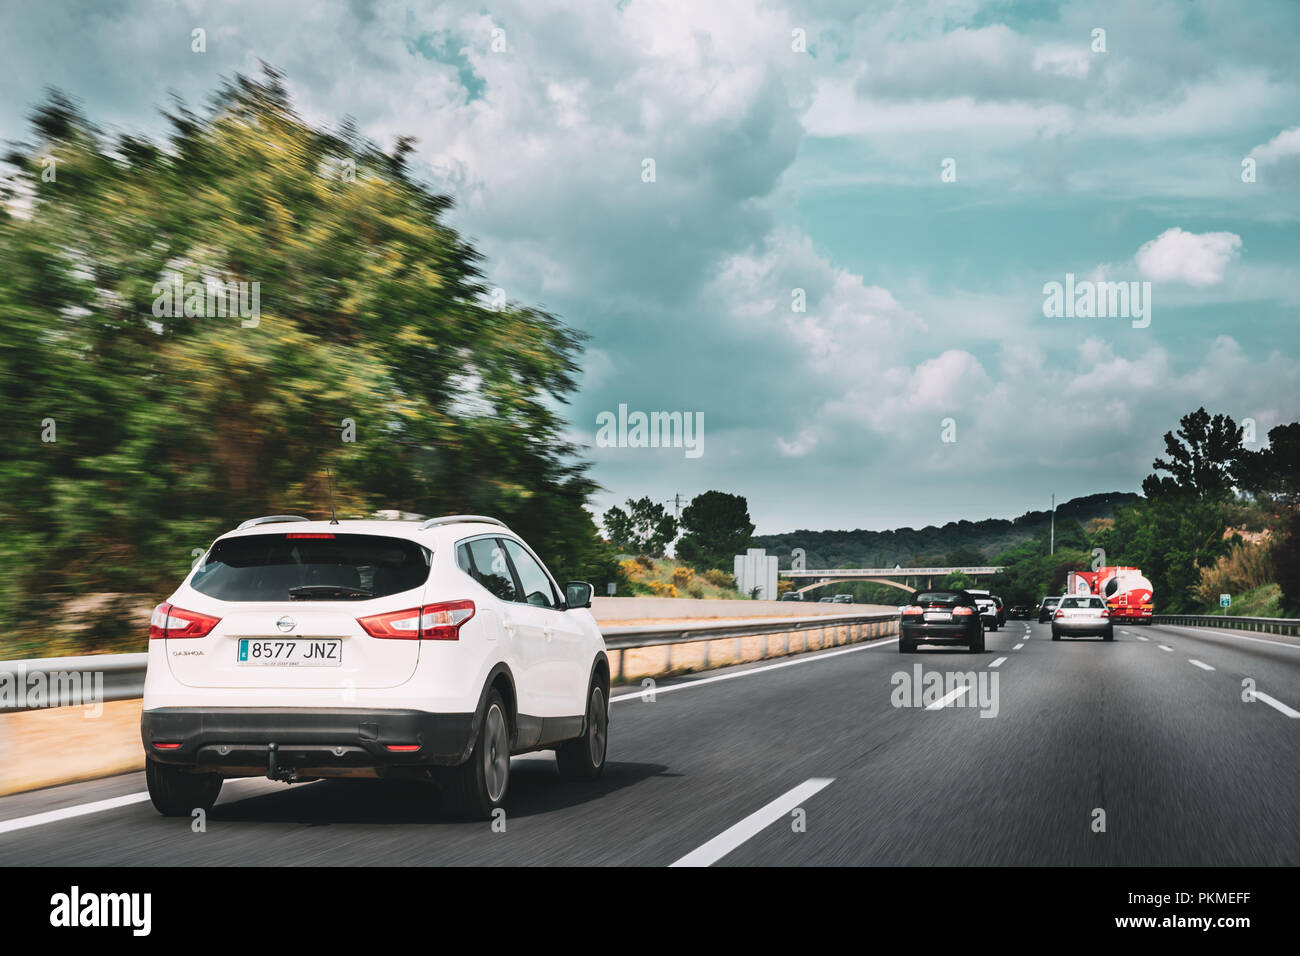 Vilalba Sasserra, Spain - May 18, 2018: Nissan Qashqai Driving In Motorway Road. The Nissan Qashqai is a compact crossover SUV produced by the Japanes - Stock Image